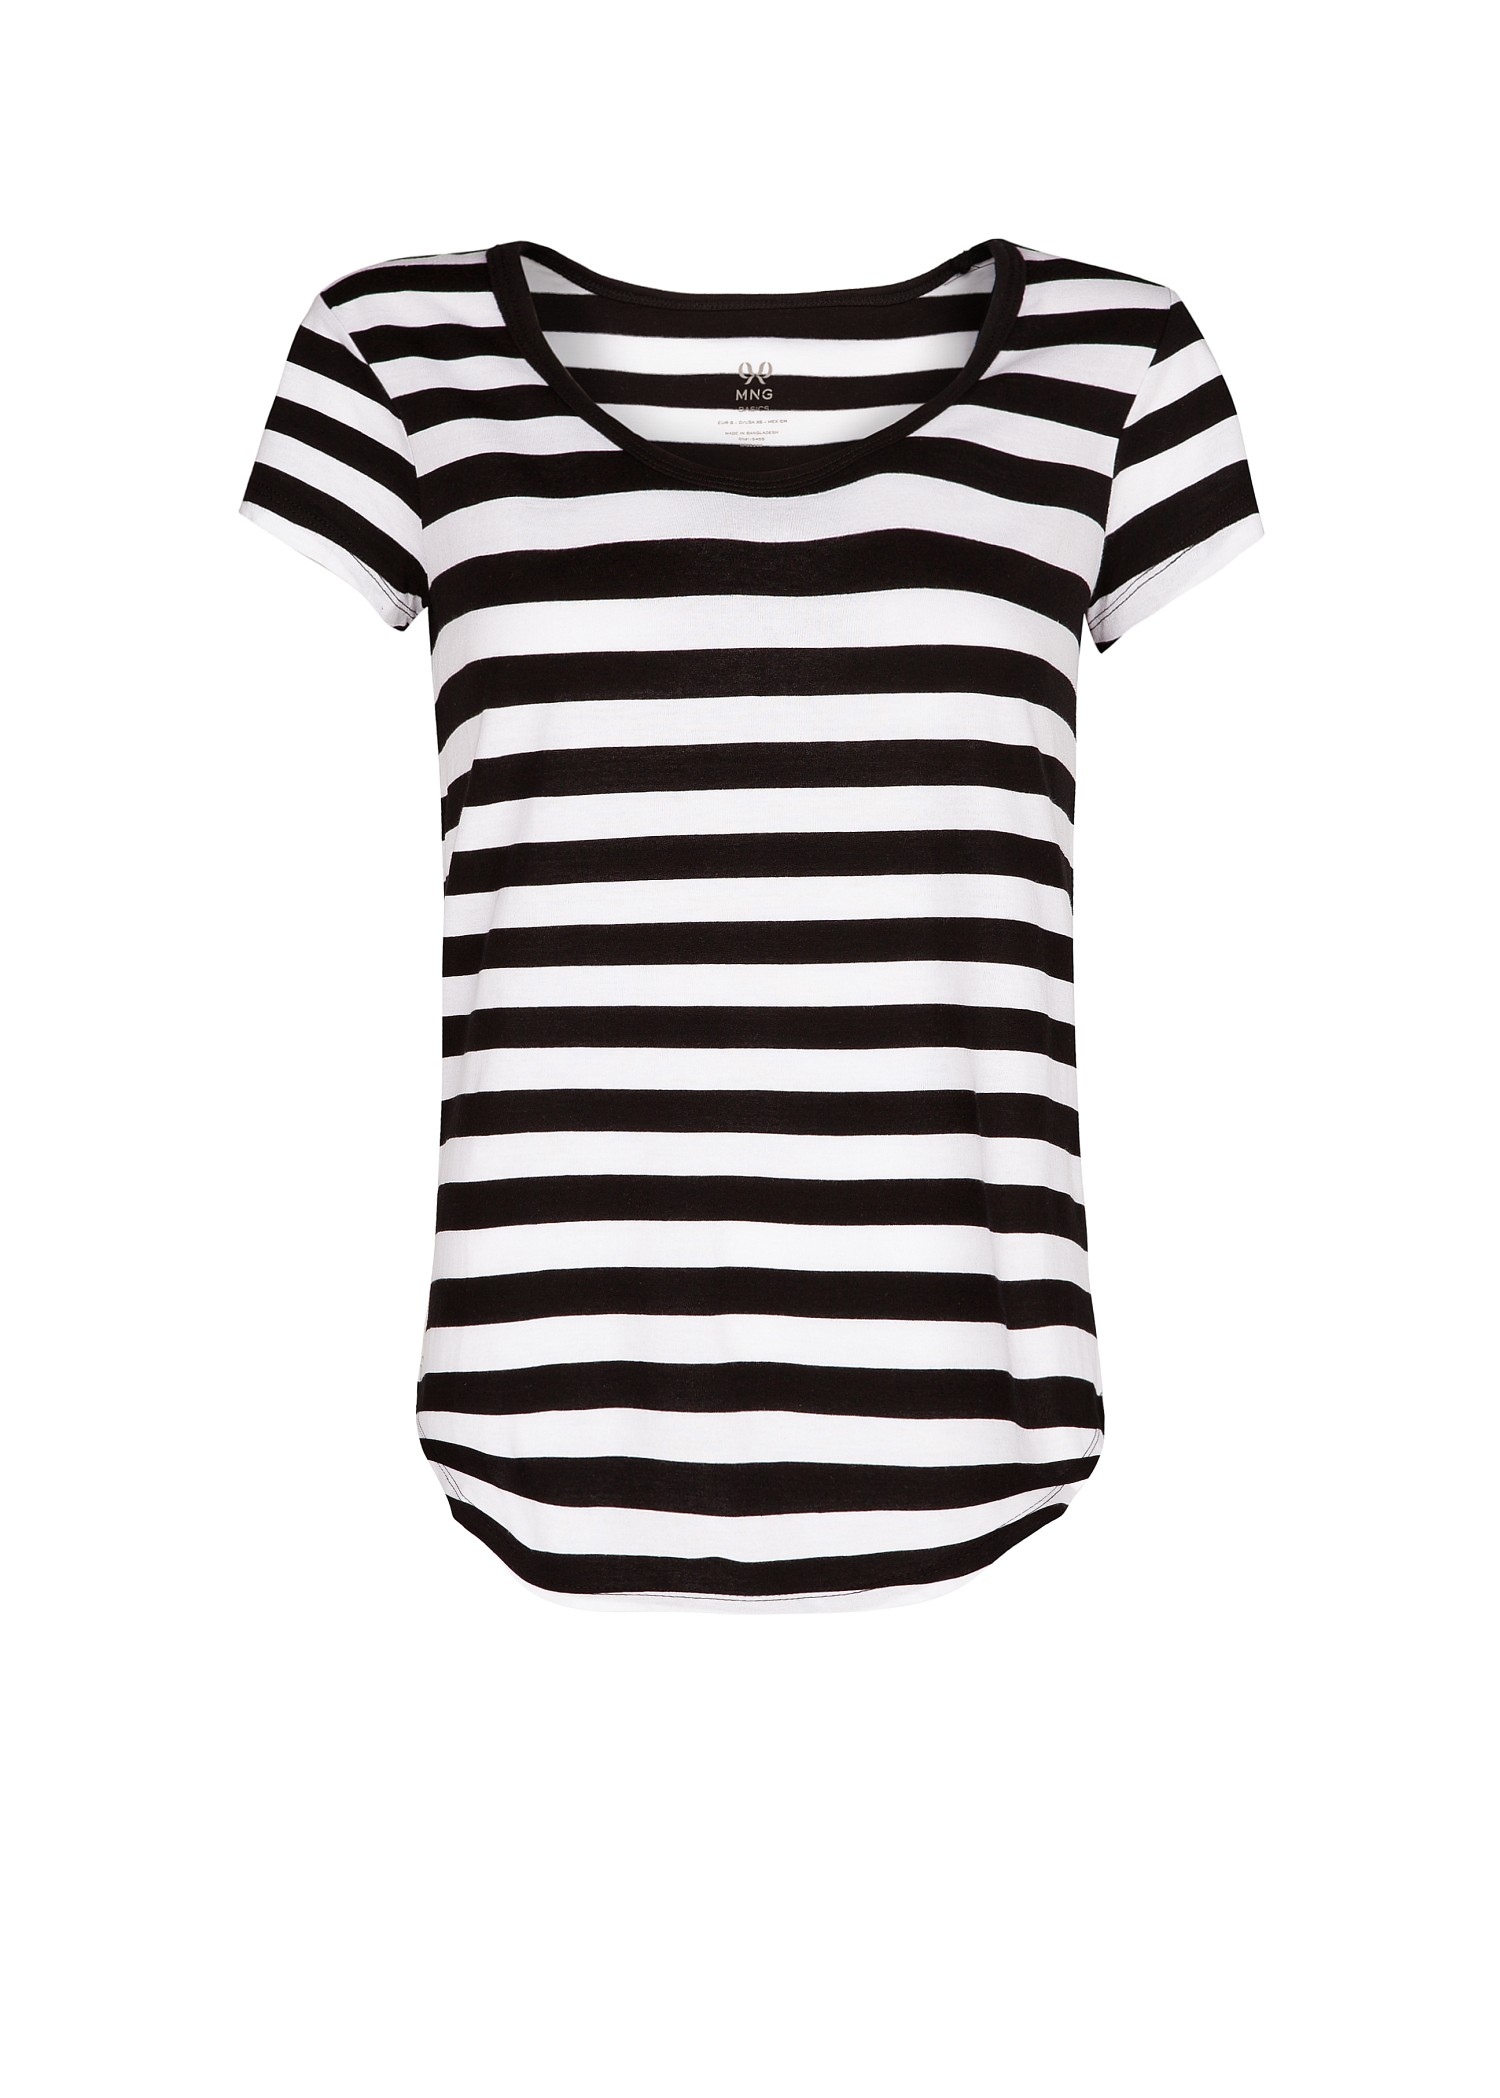 white and black striped shirt women